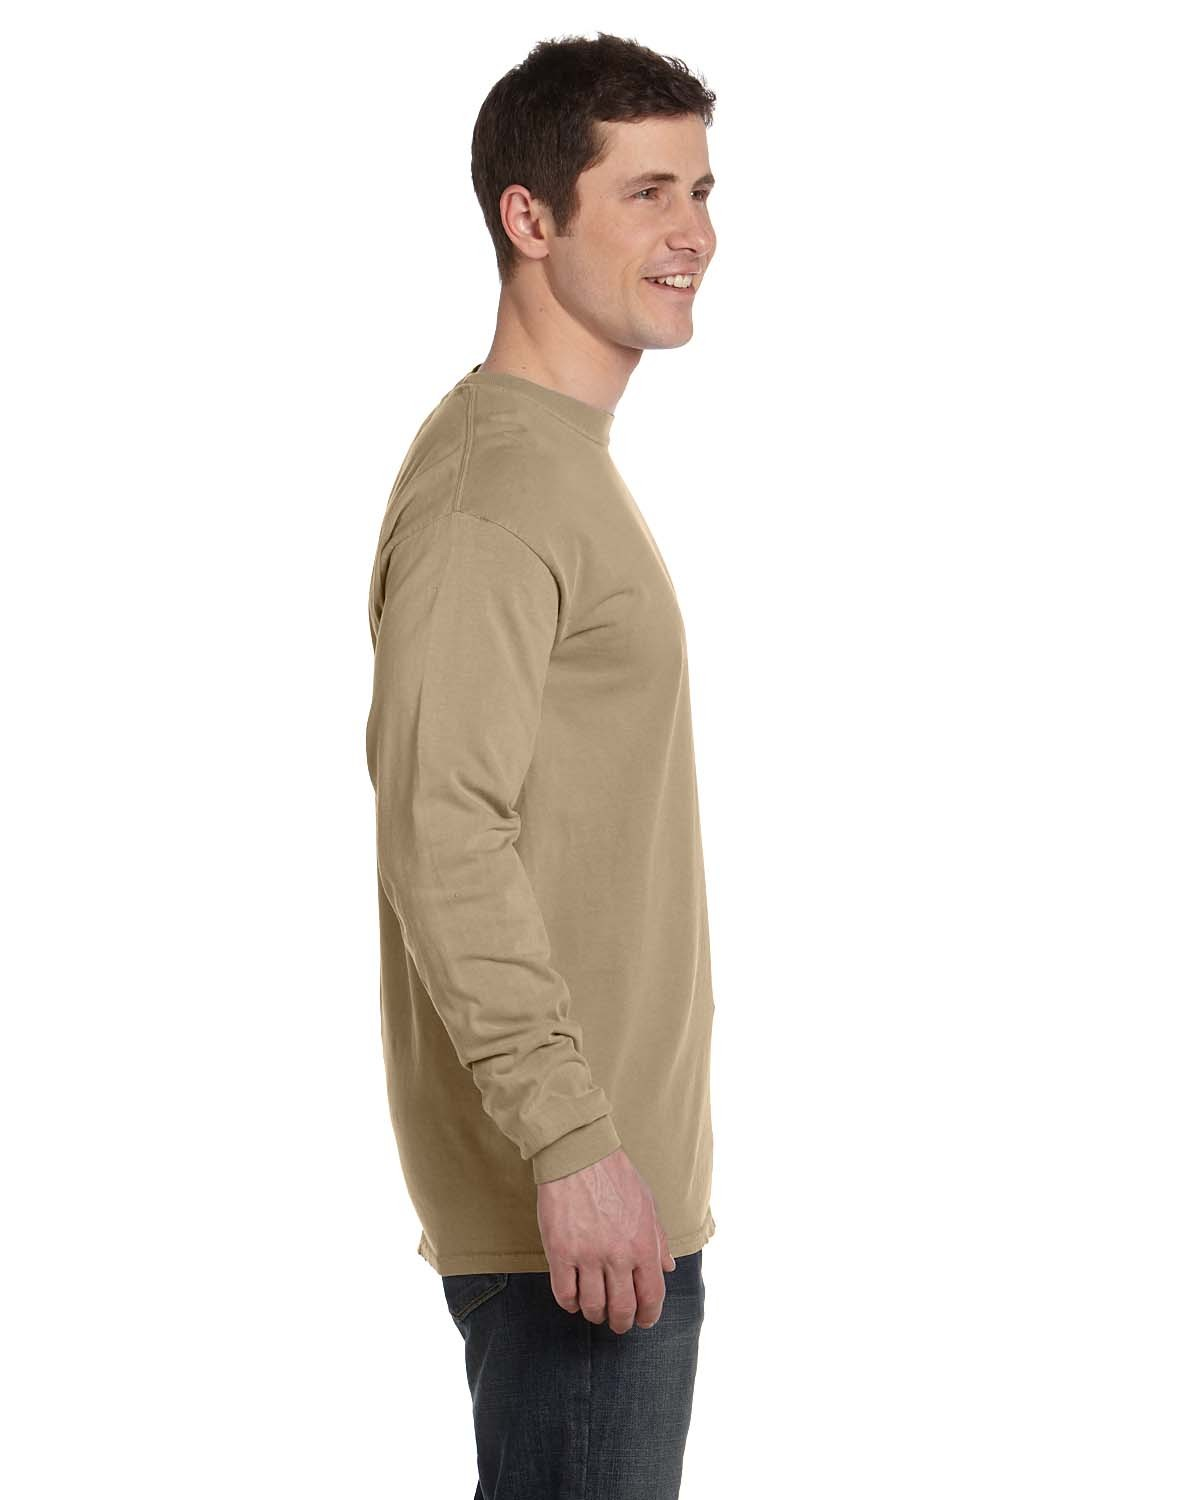 C6014 Comfort Colors KHAKI